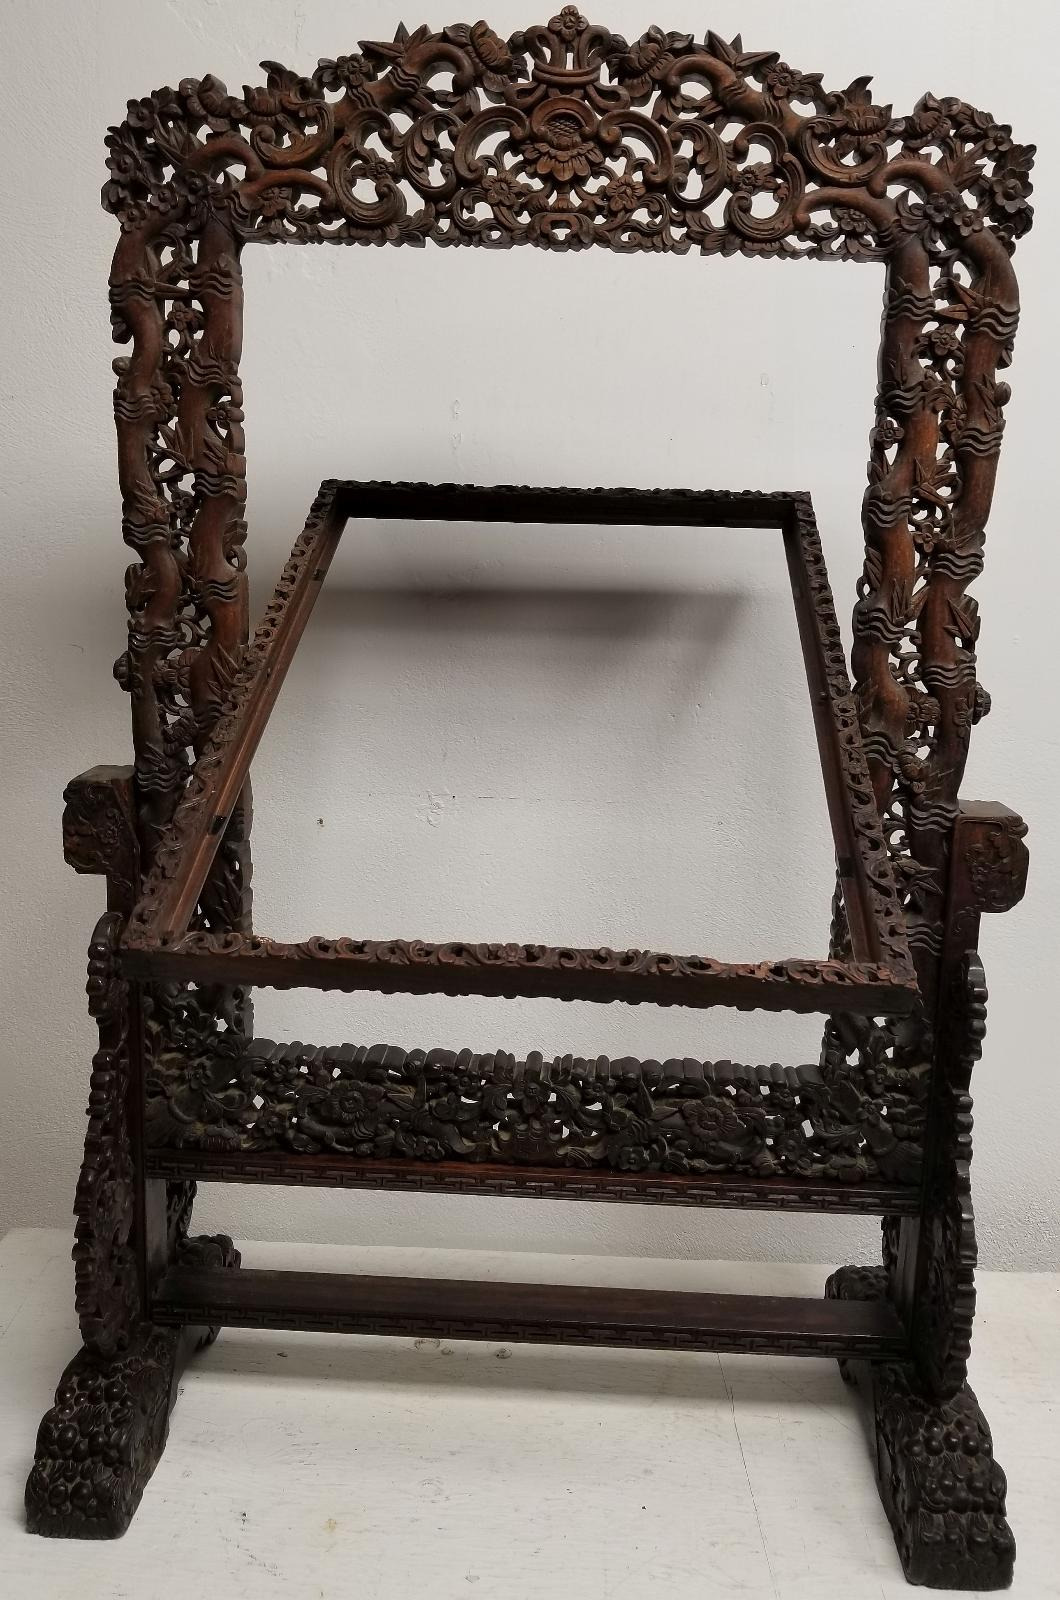 Antique Wicker Furniture for Sale On Ebay Lovely Details Zu Antique Massive Chinese Carved Wood Rosewood Hongmu Table Screen Furniture